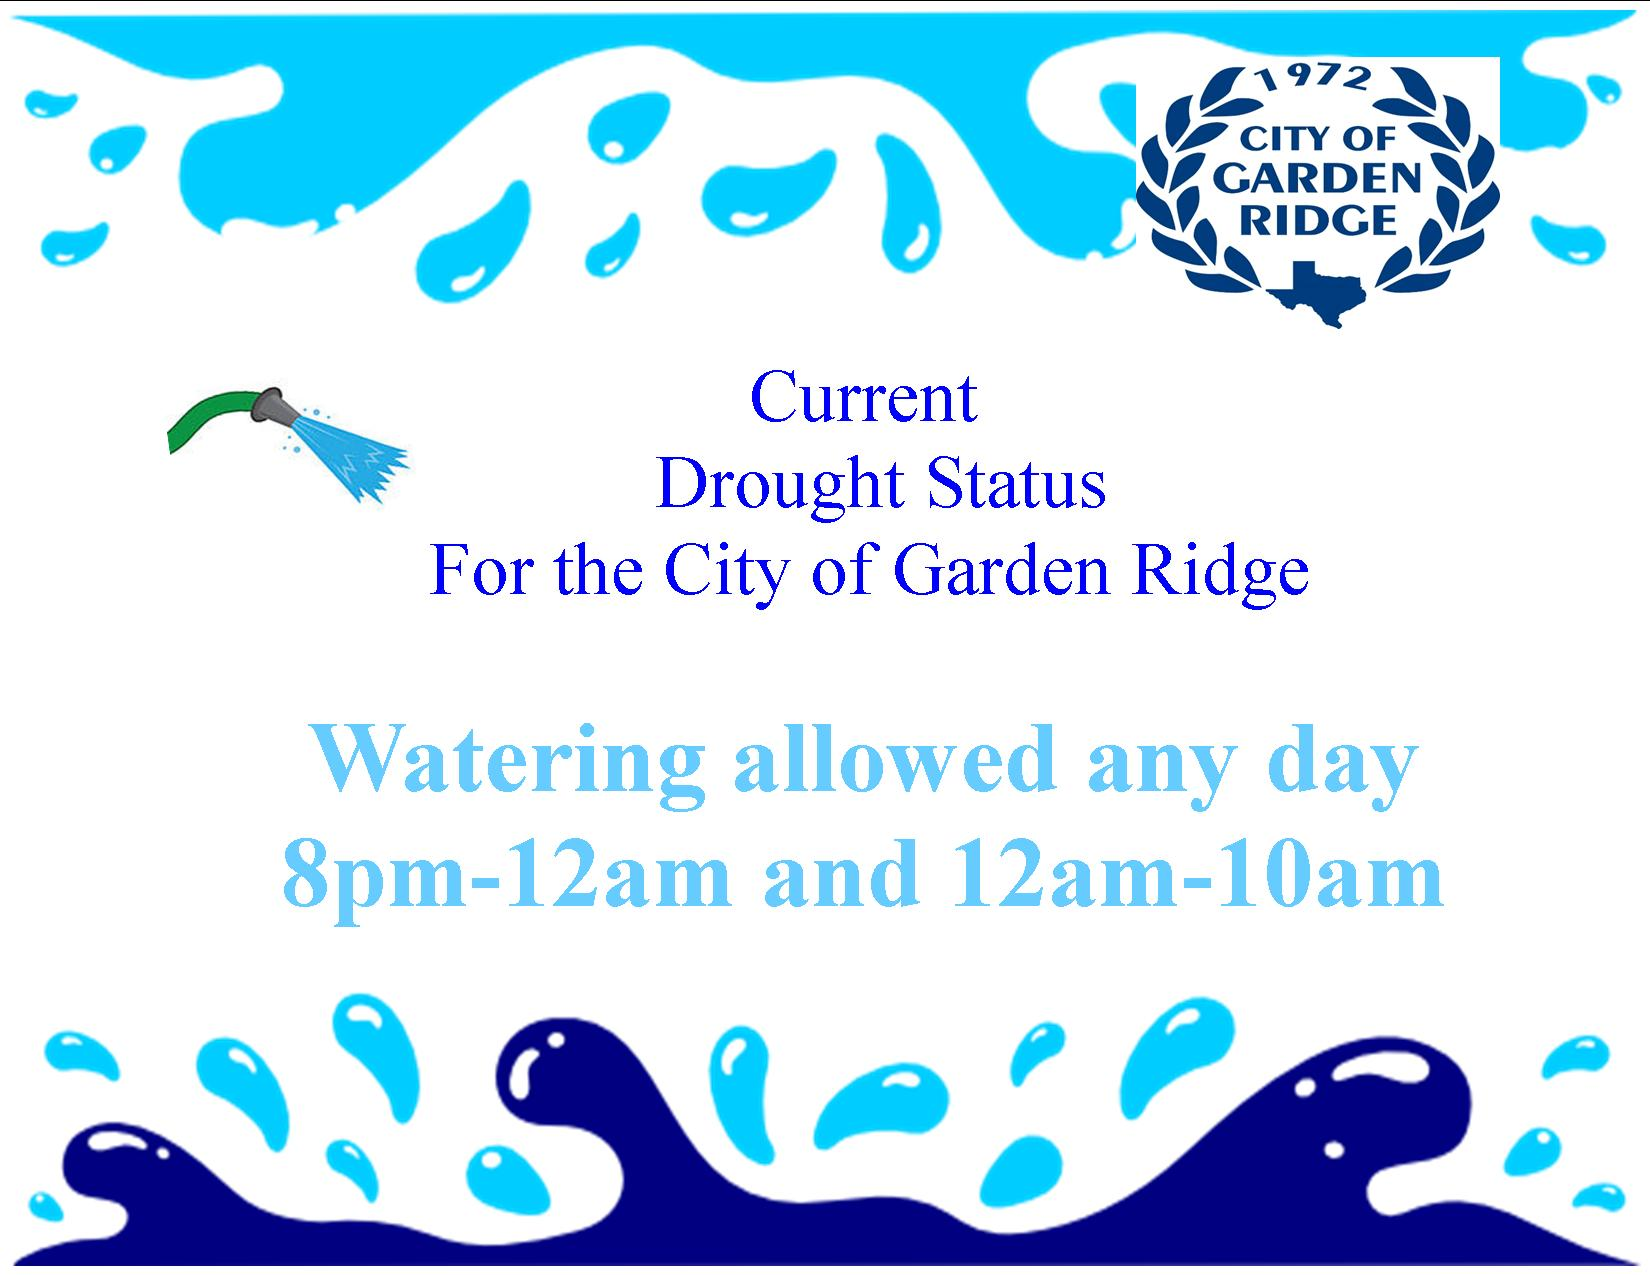 Watering allowed any day picture.jpg